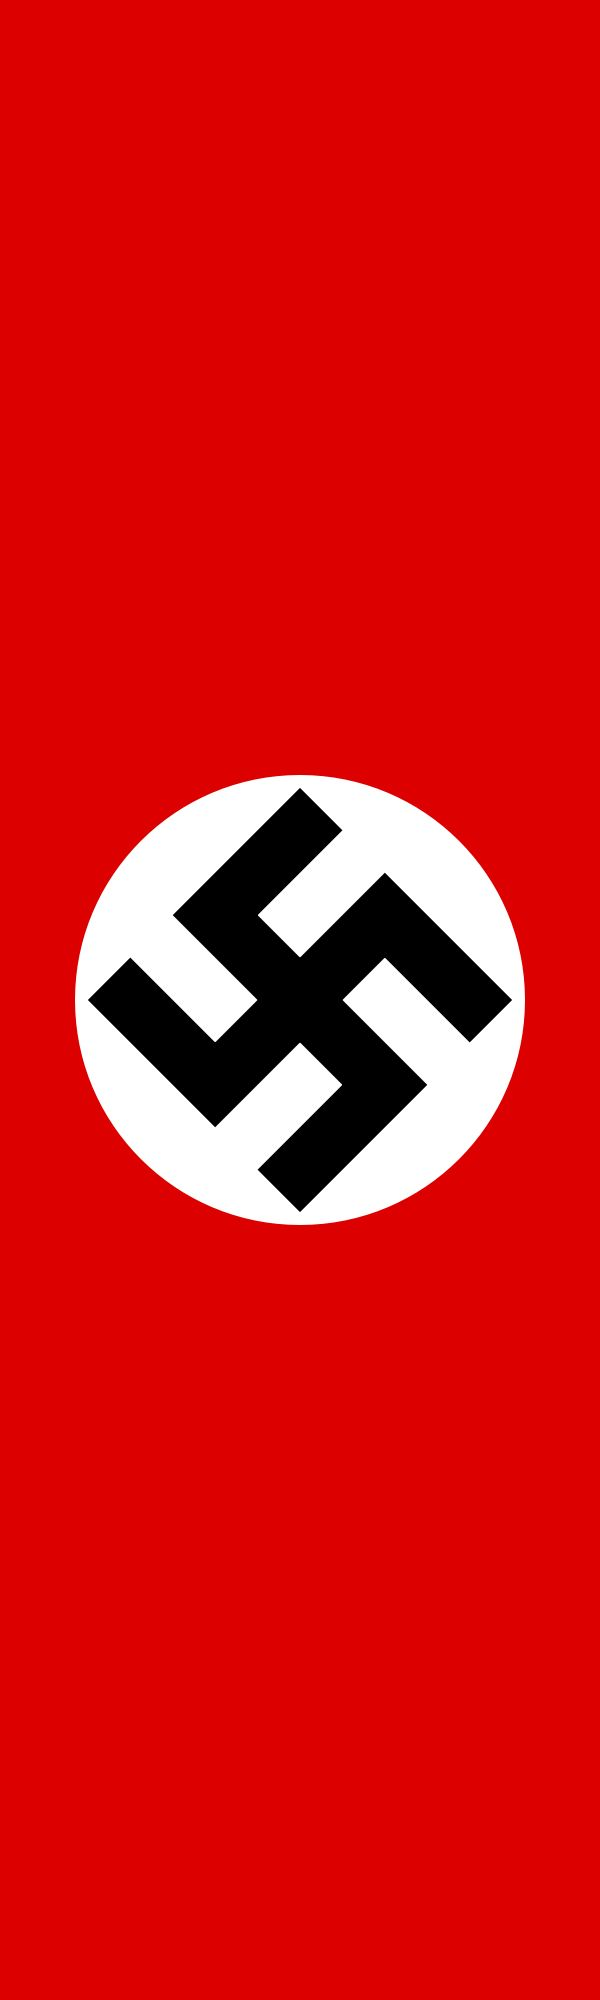 Hanging banner version of the Nazi flag.